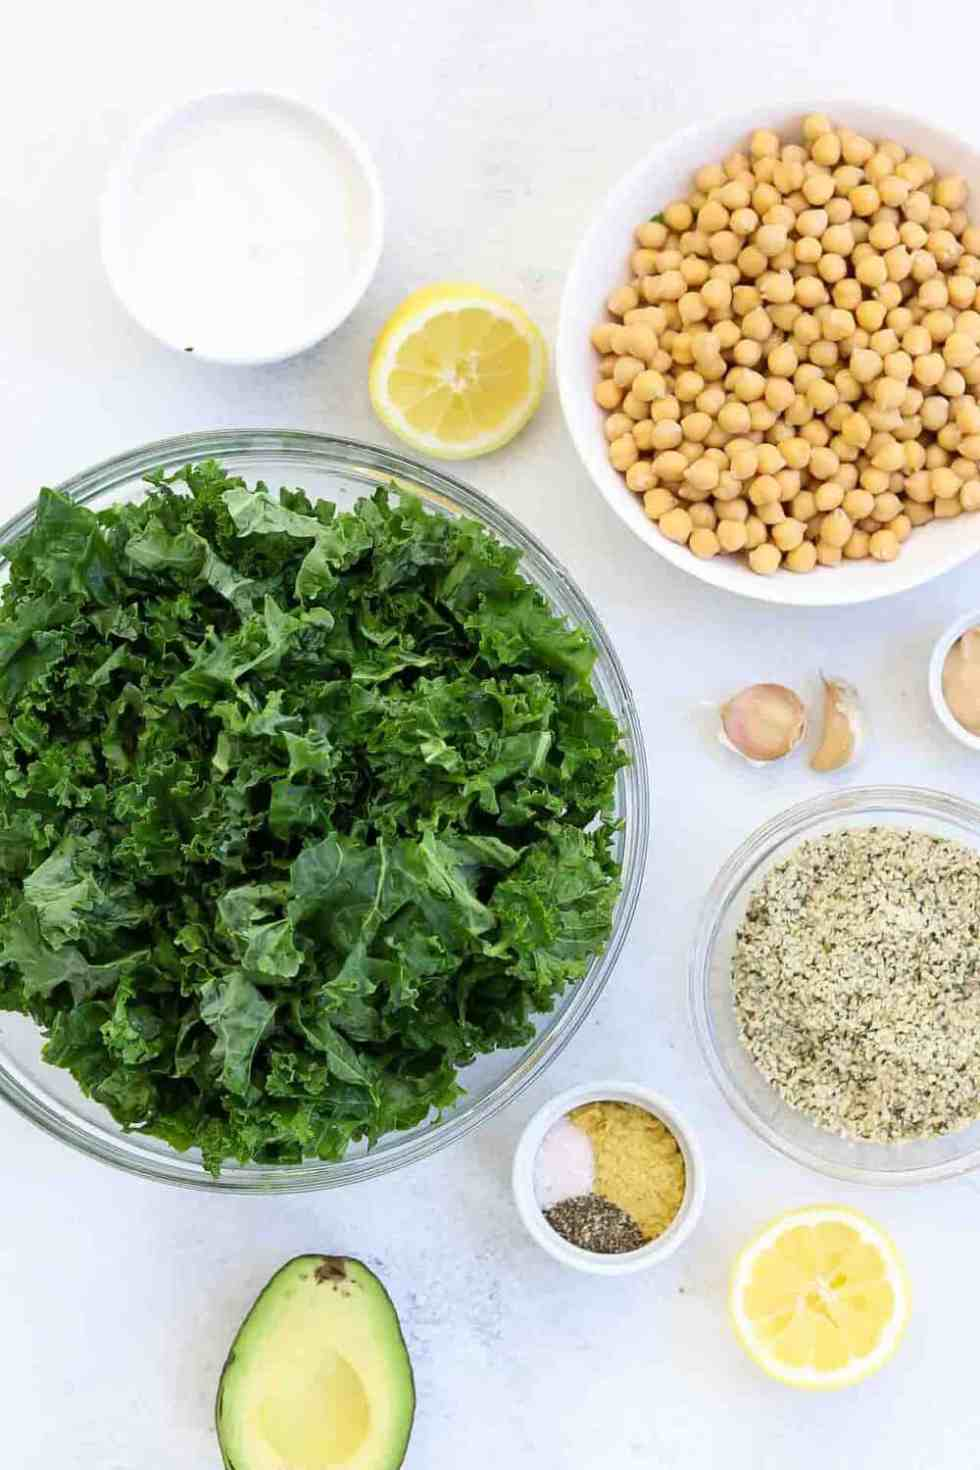 Ingredients for the kale caesar salad arranged in bowls with a grey backdrop.